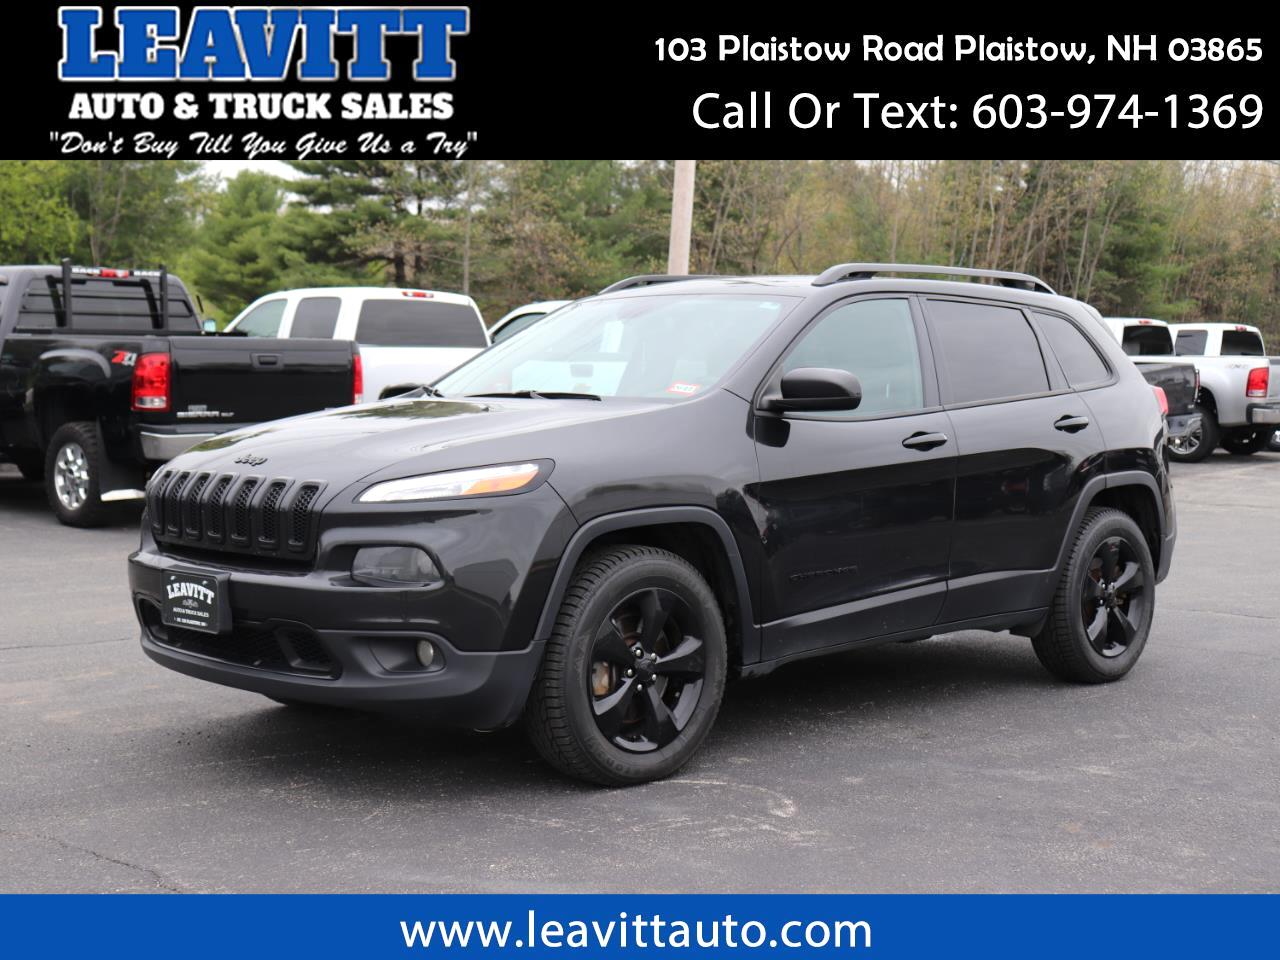 Cherokee Truck Sales >> Used 2015 Jeep Cherokee For Sale In Plaistow Nh 03865